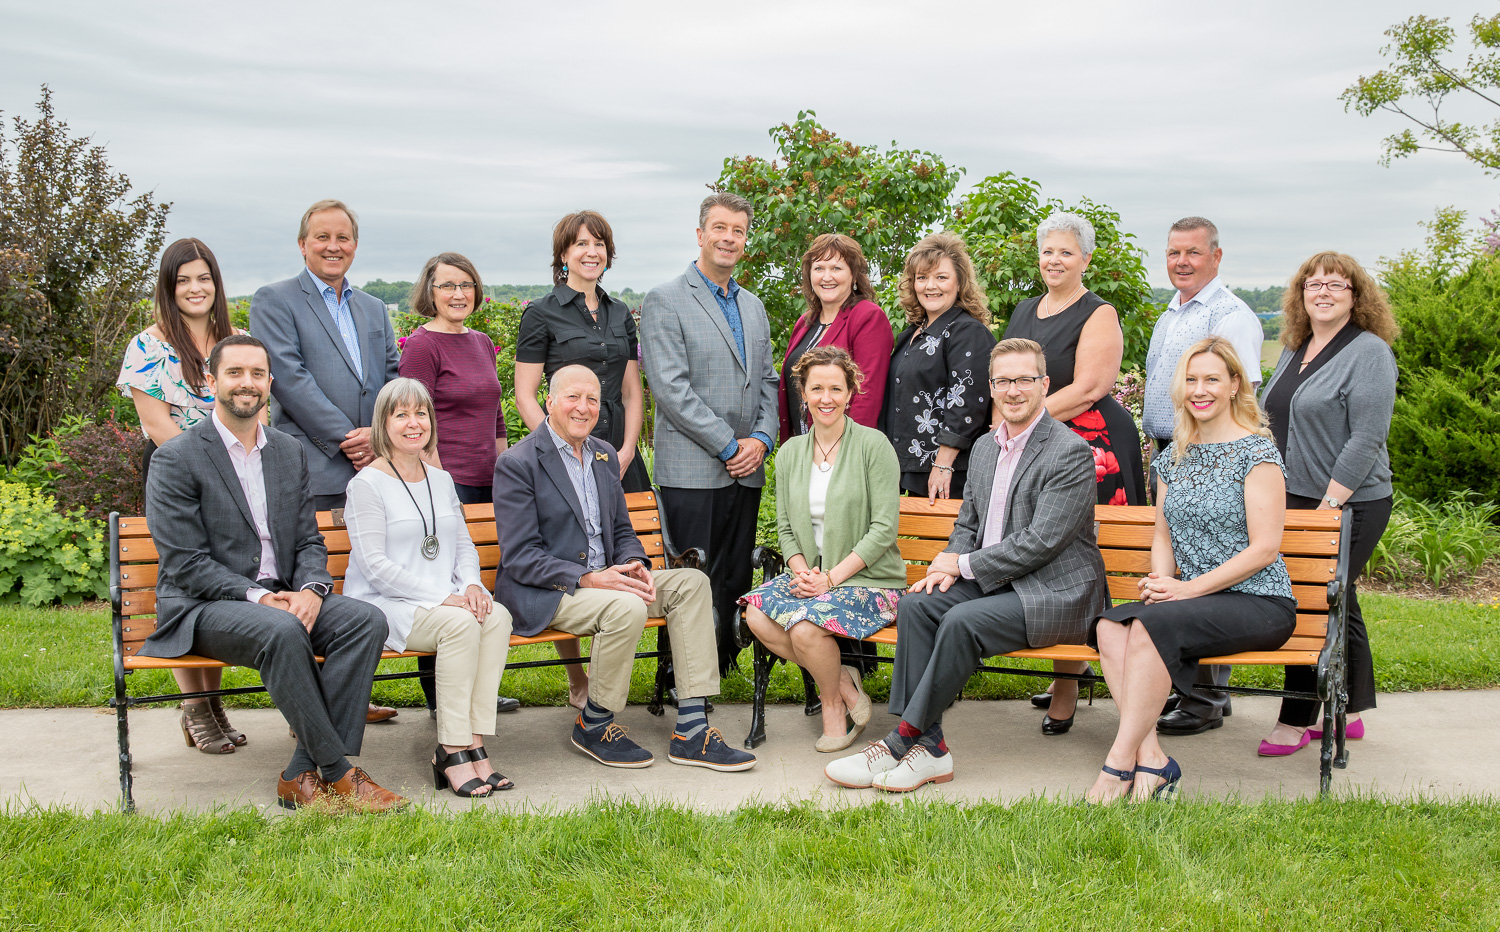 client-group-board-of-directors-annual-general-meeting-photograph-quality-professional-photographer-orangeville-ontario-business-image-social-media-newspaper-newsletter.jpg